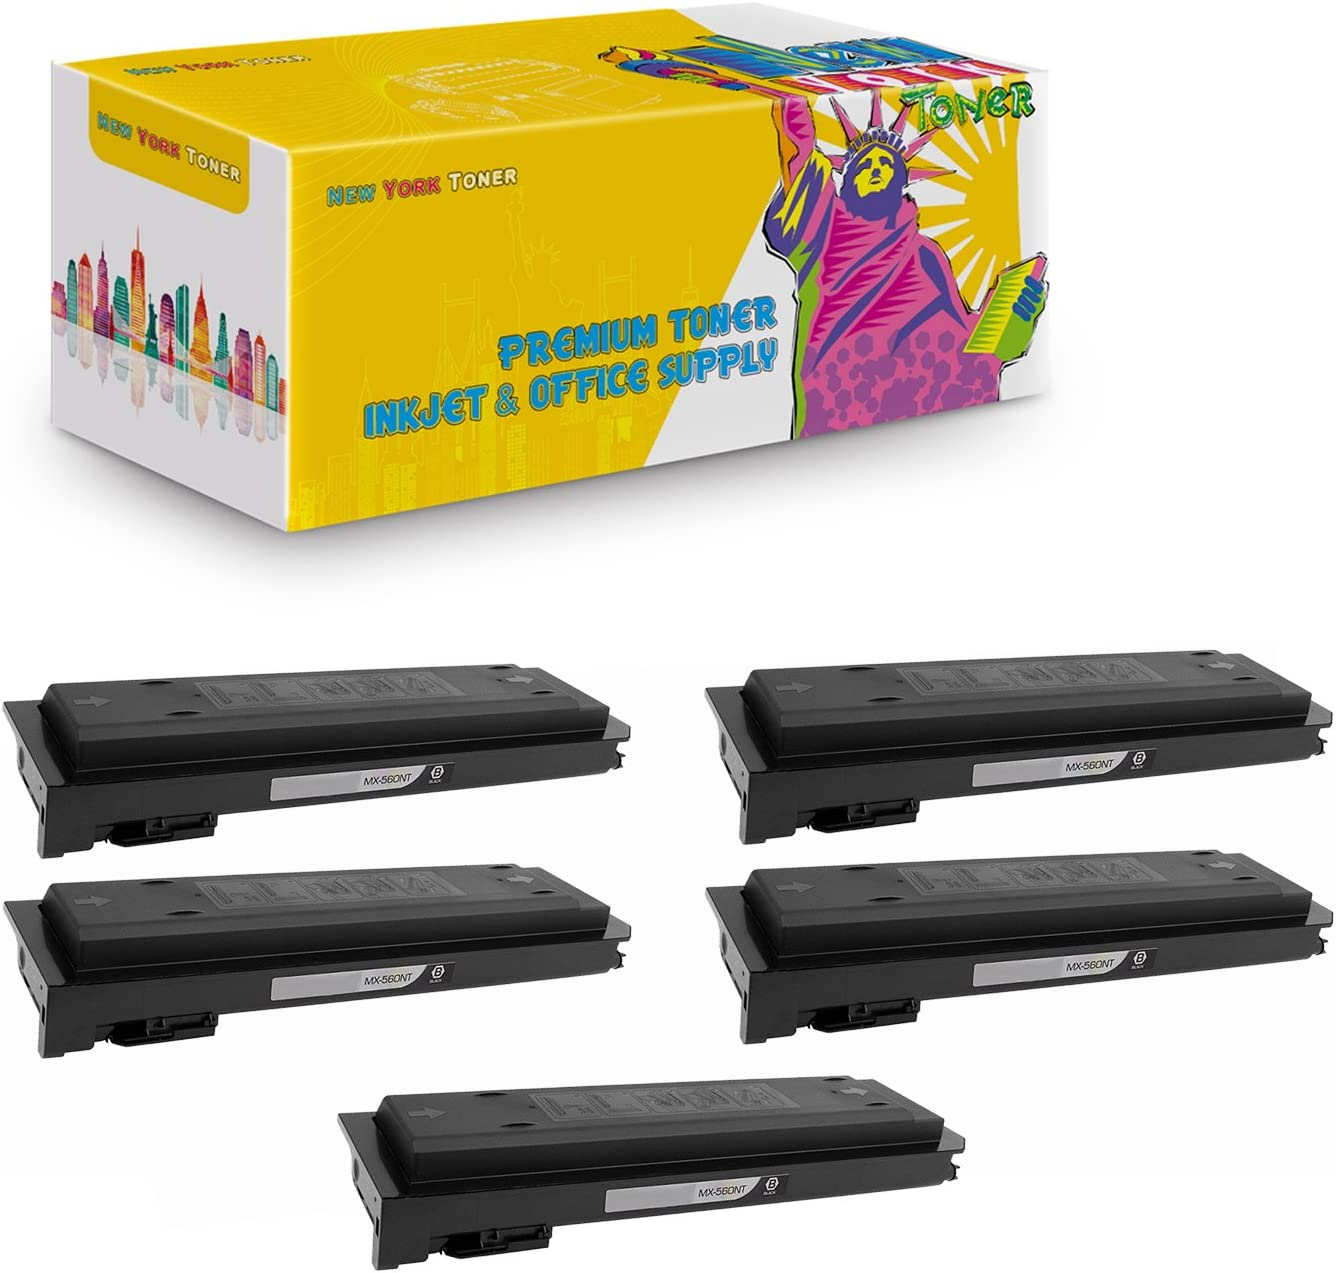 564 Black, 2-Pack 465 565 NYT Compatible High Yield Toner Cartridge Replacement for MX-560NT for Sharp MX M364